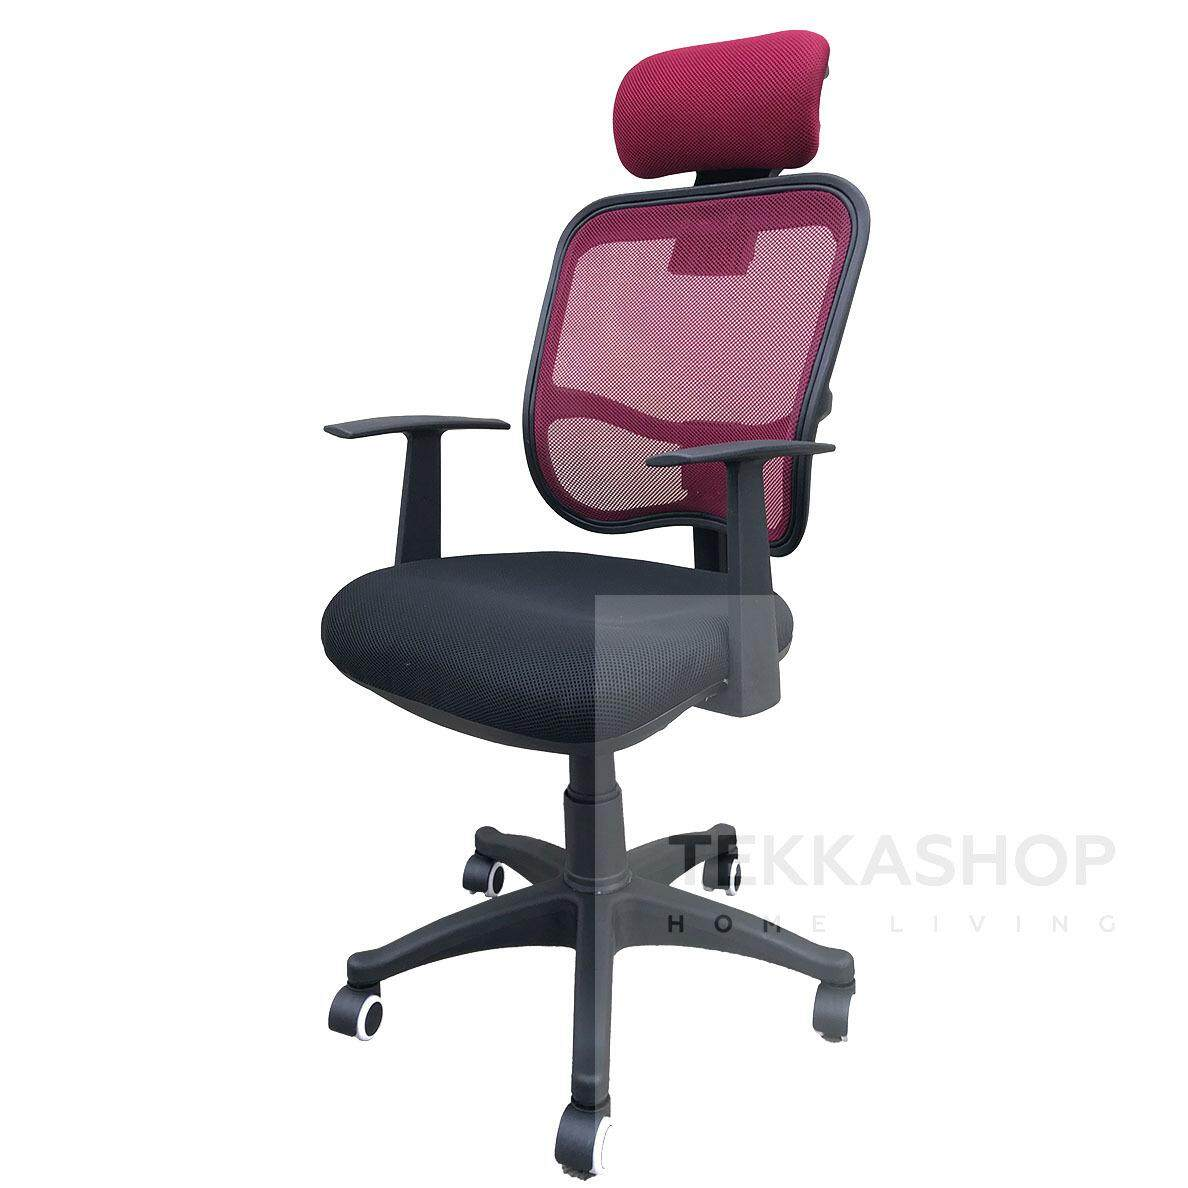 Home Office Chairs At Best